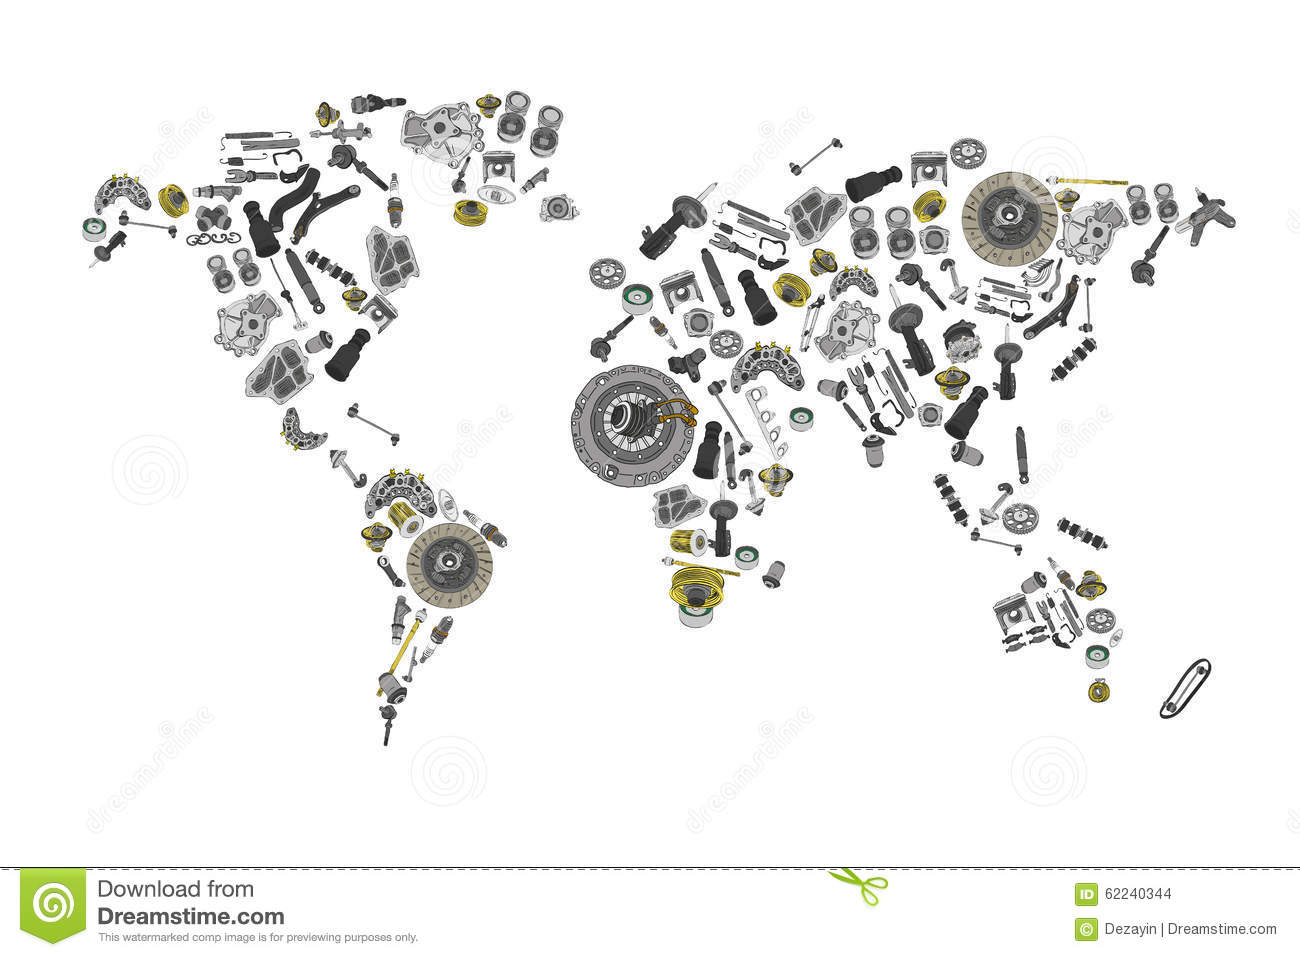 Draw A Map Of The World Made Up Of Spare Parts Stock Vector ...